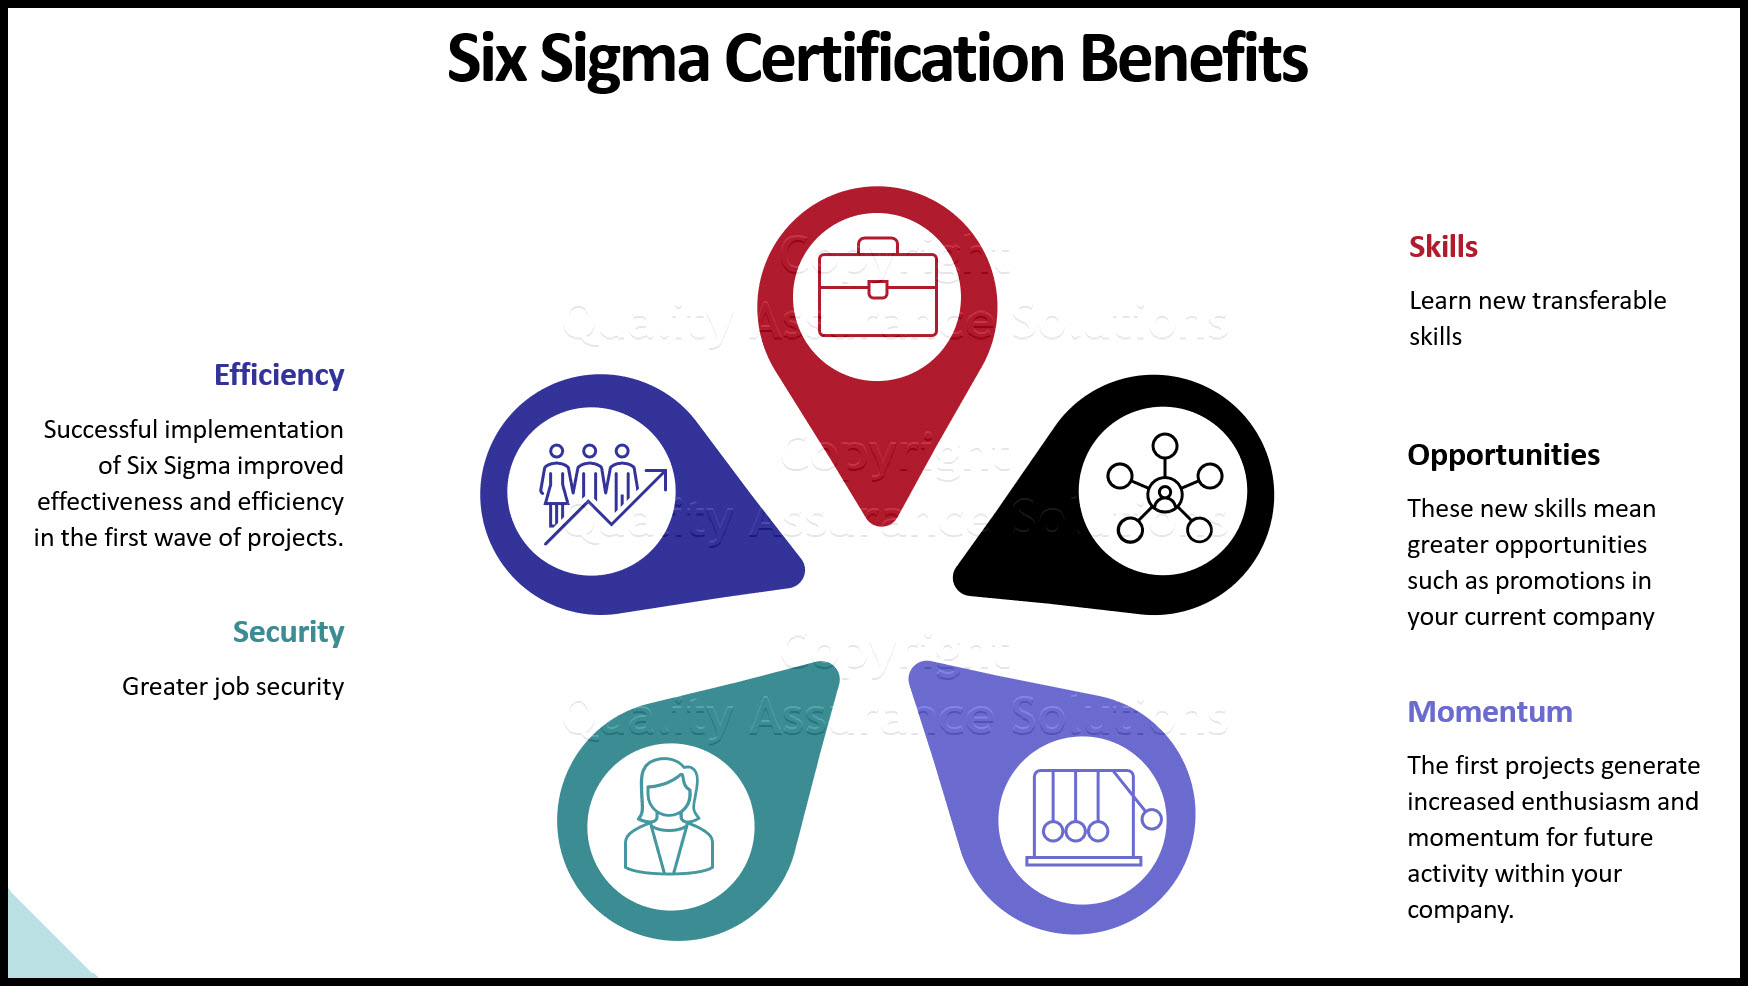 How To Get Six Sigma Certification Reddit